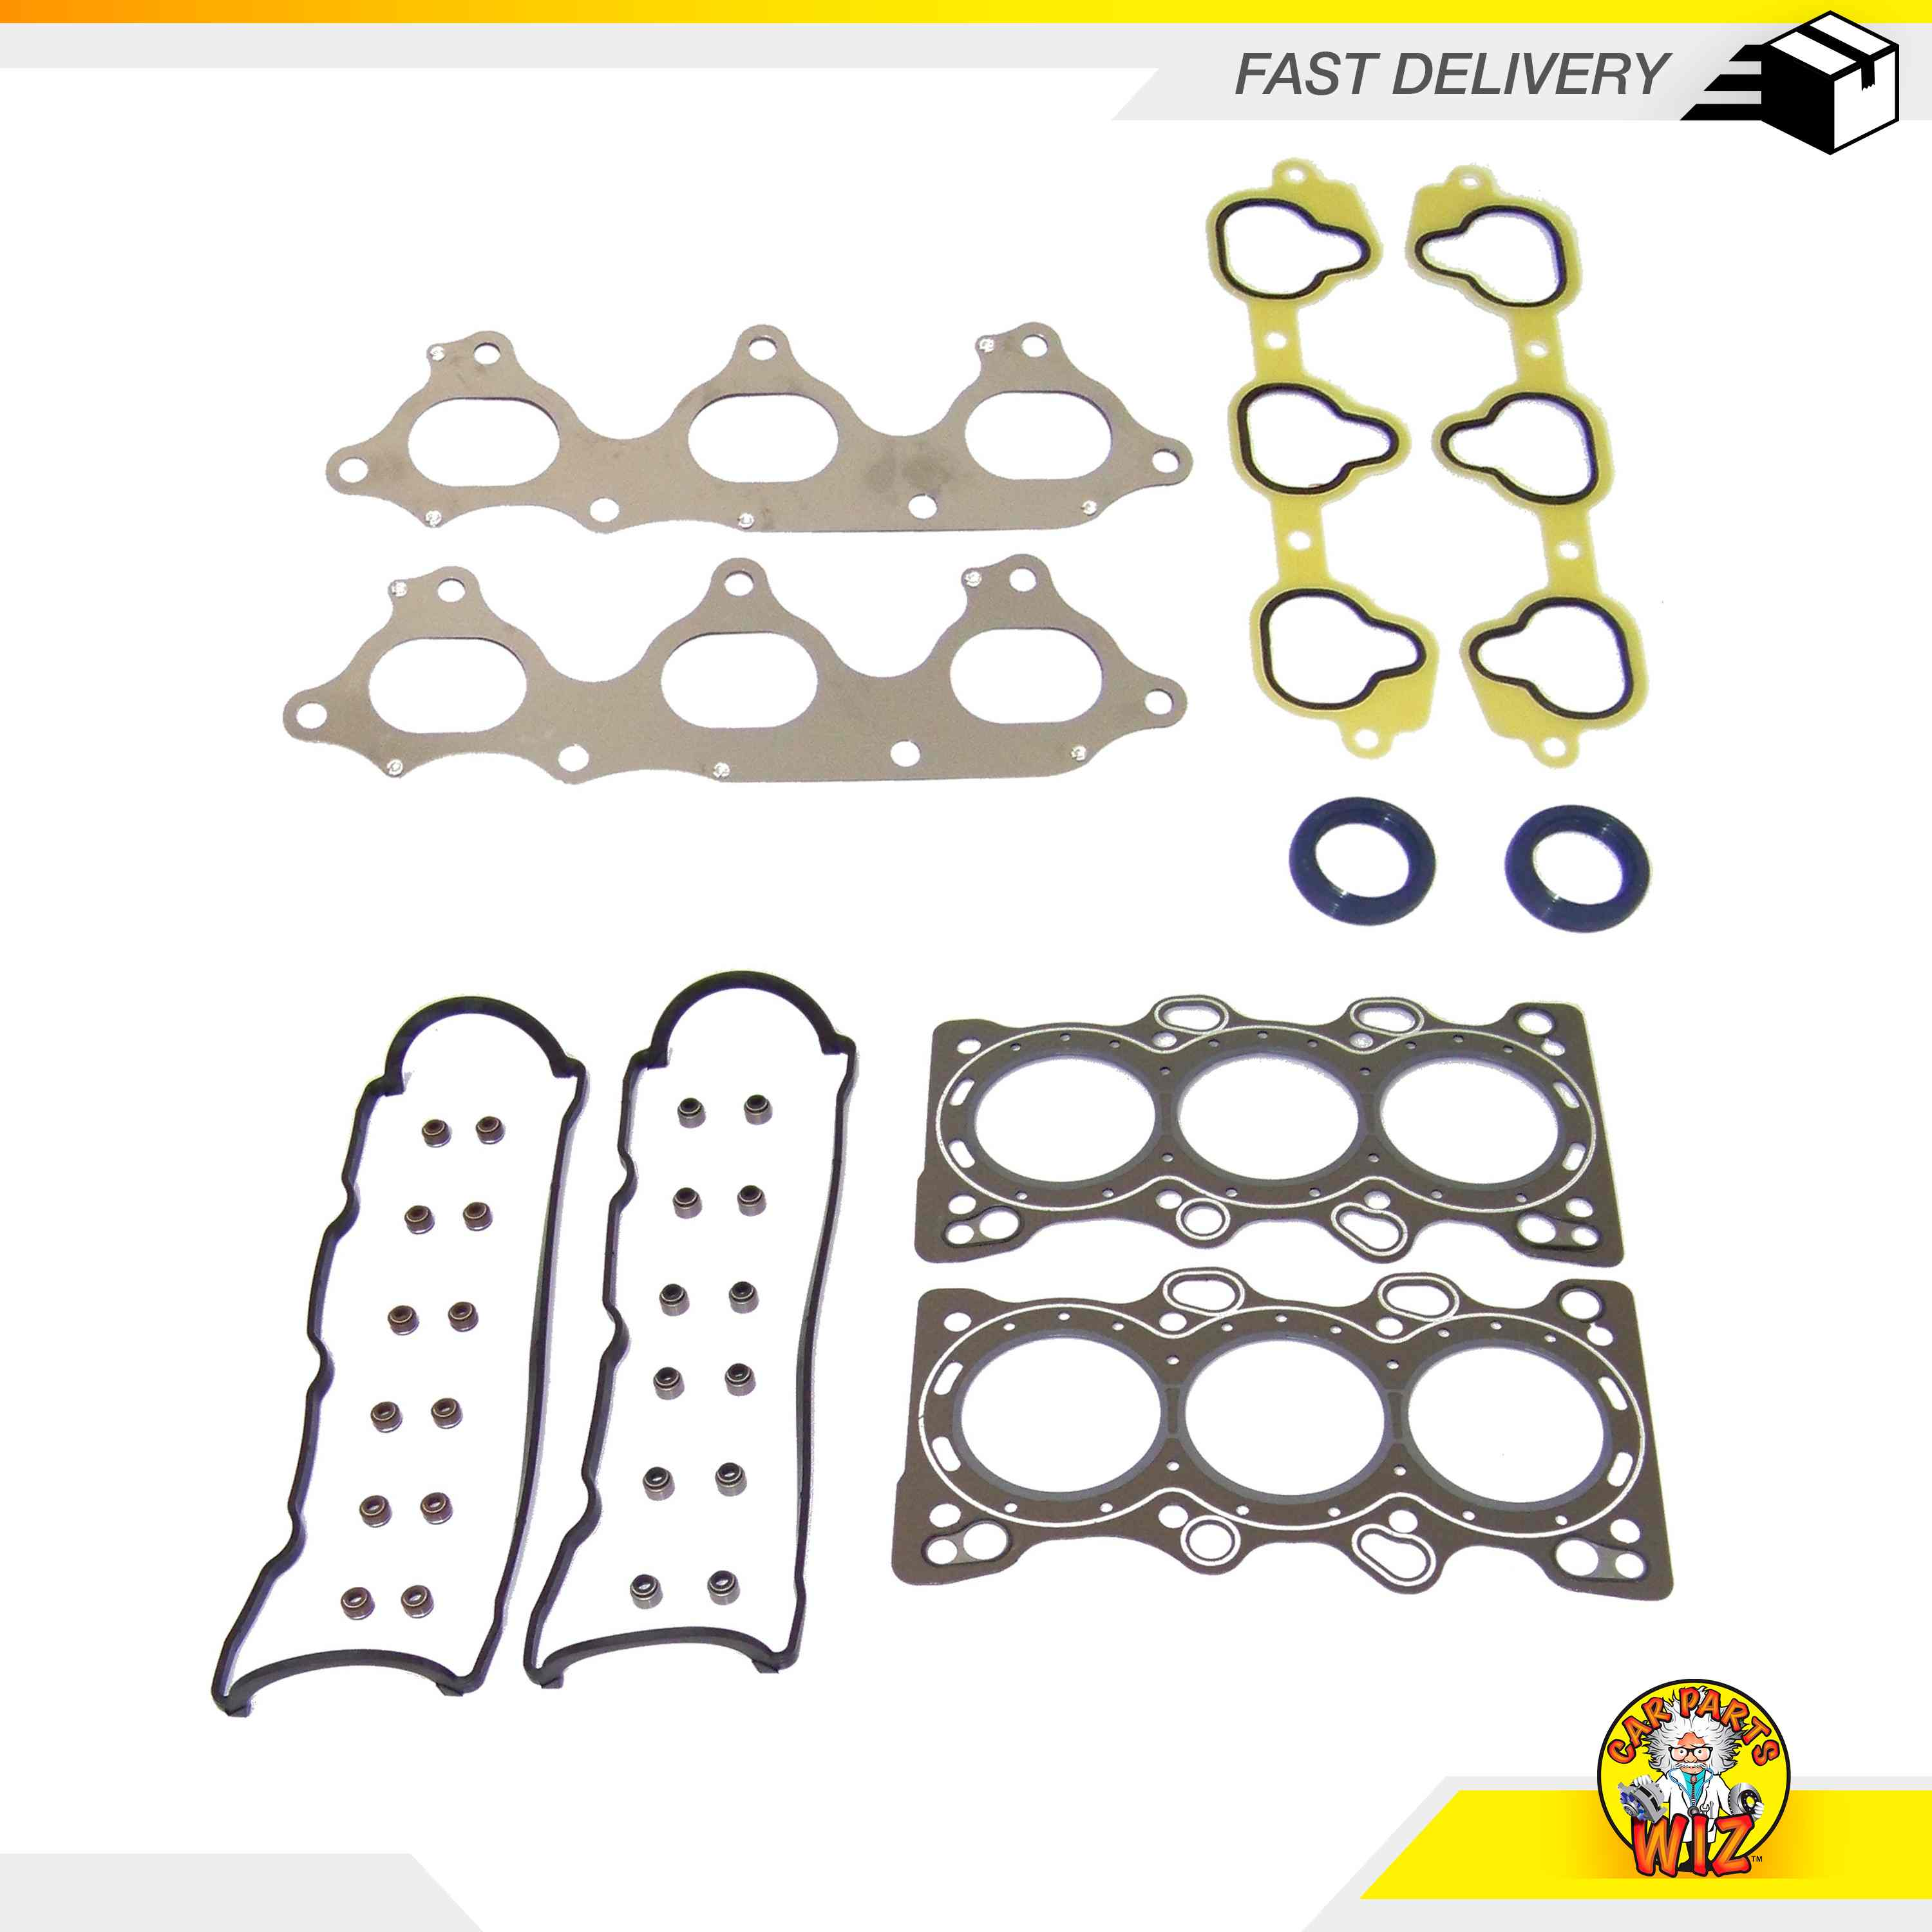 Graphite Head Gasket Set Fits 87-91 Acura Sterling 827